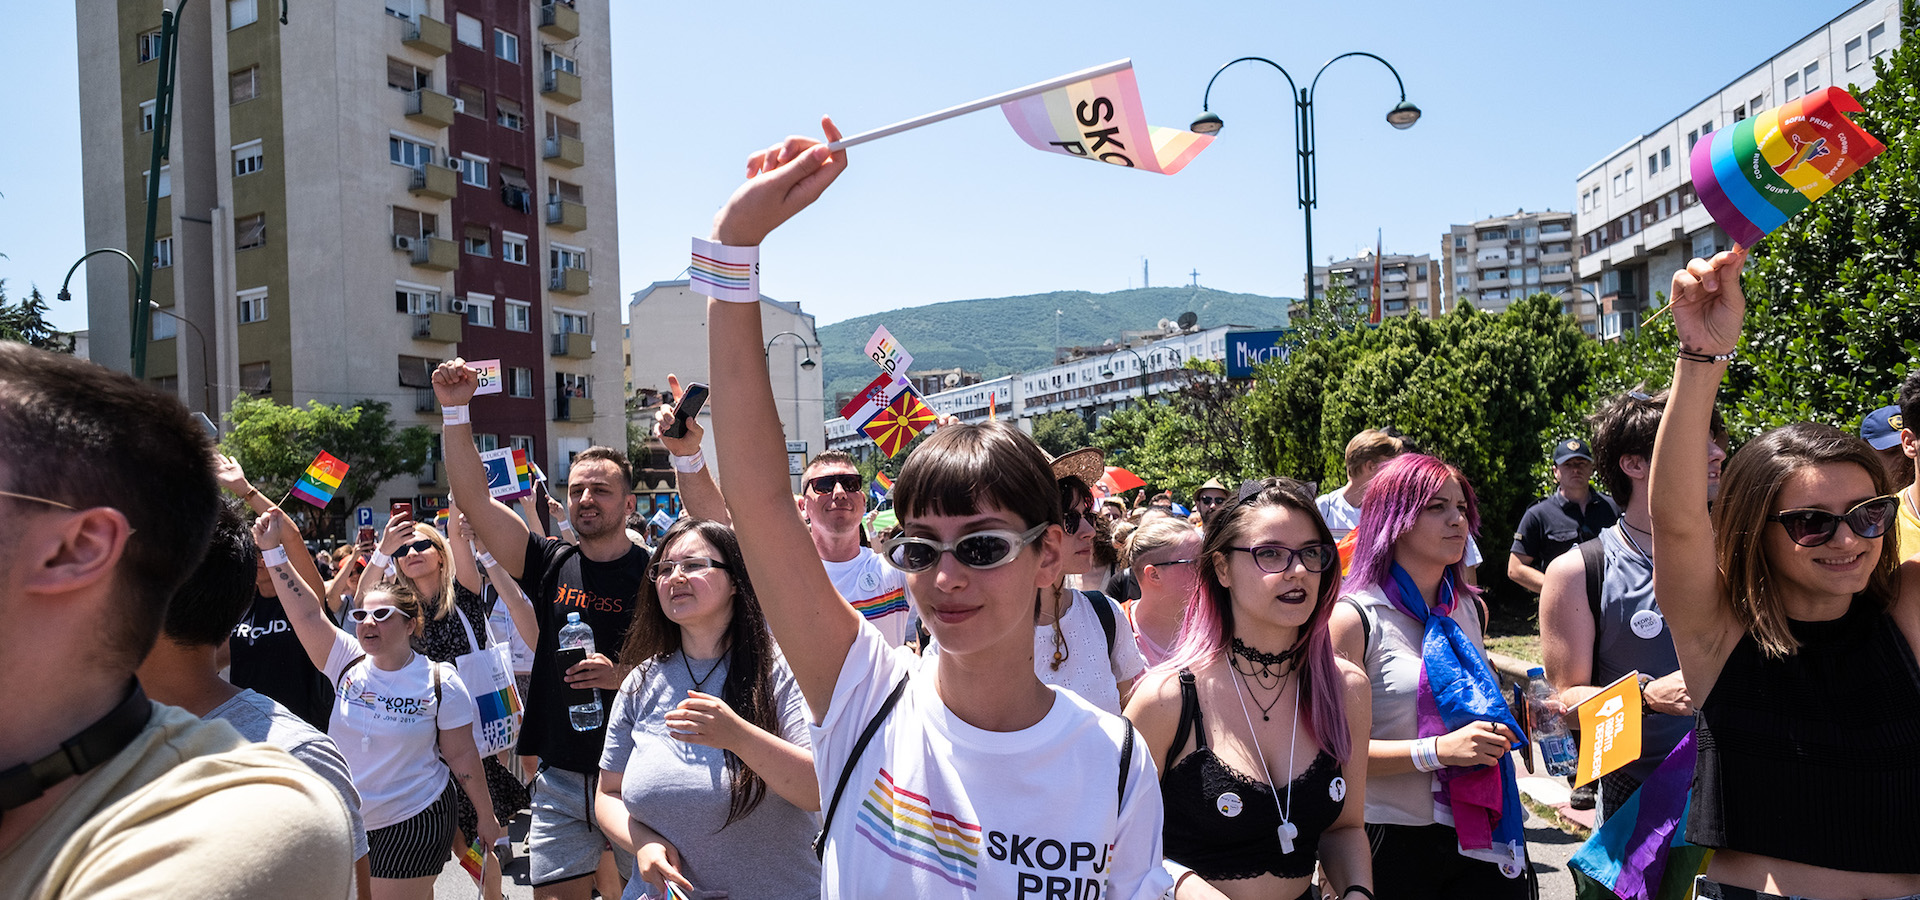 As North Macedonia hosts its first Pride Parade, are its LGBTQ and feminist cultural activists making a breakthrough?